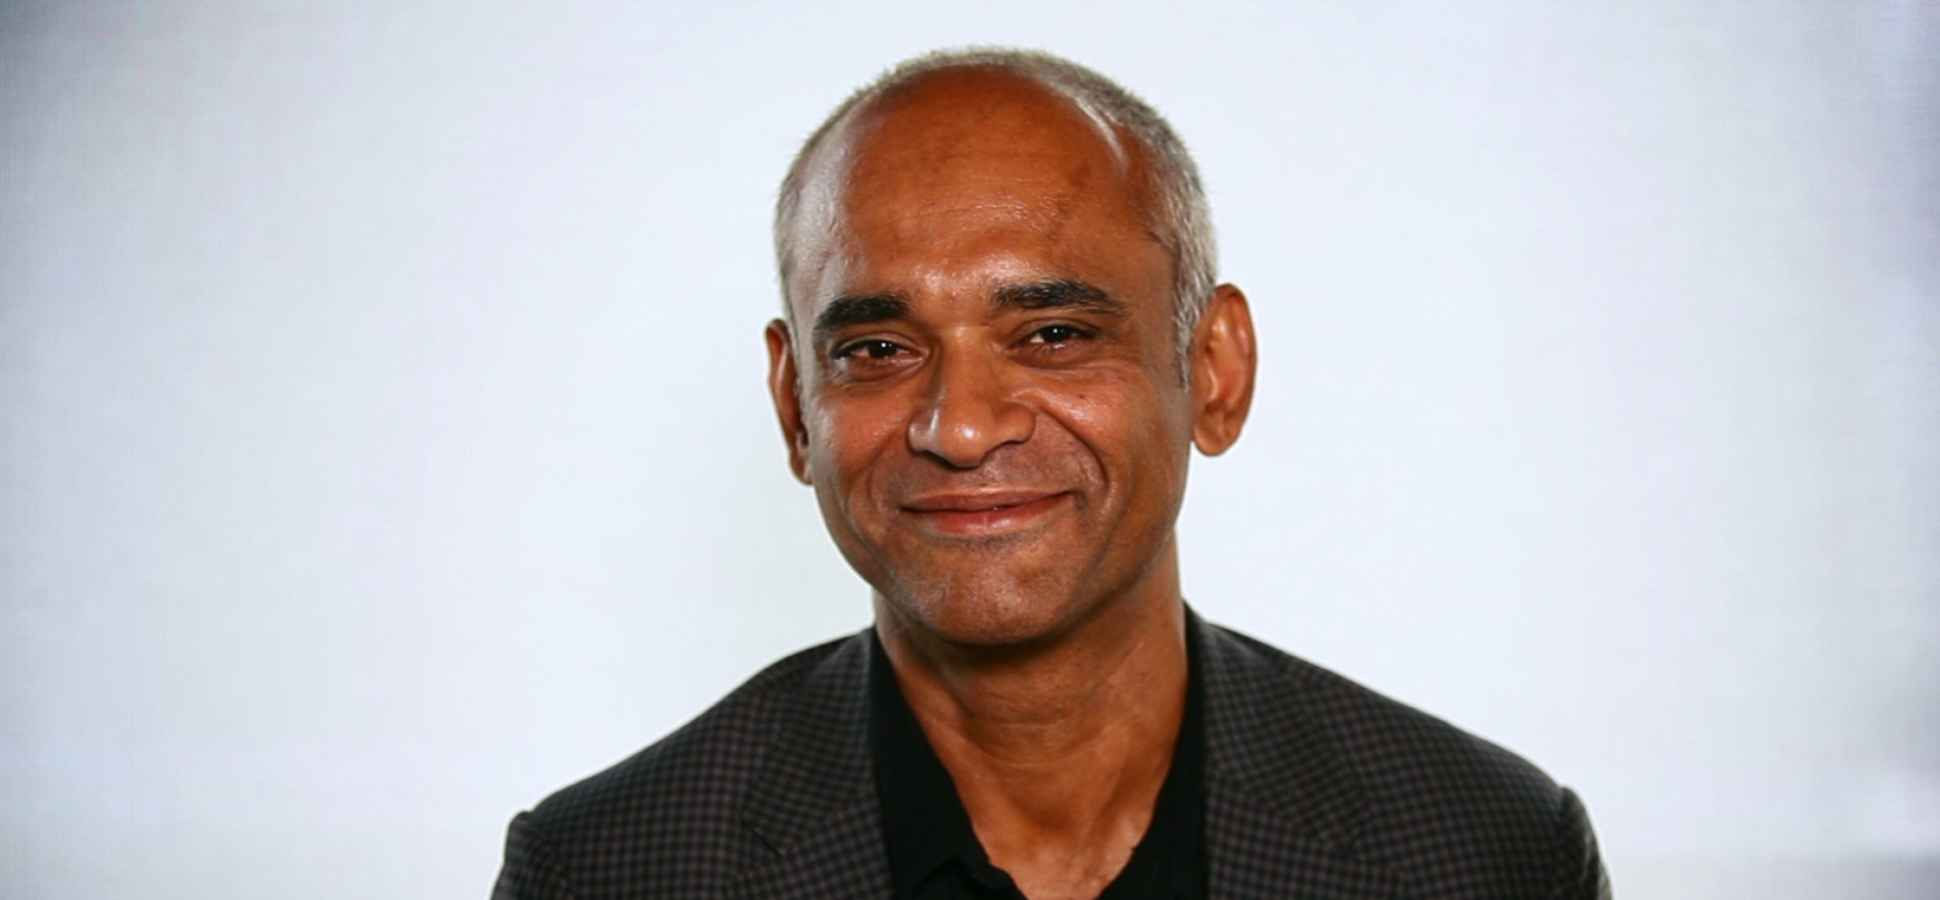 """Exclusive: Aereo Founder Reflects on Company's """"Painful Decision"""""""